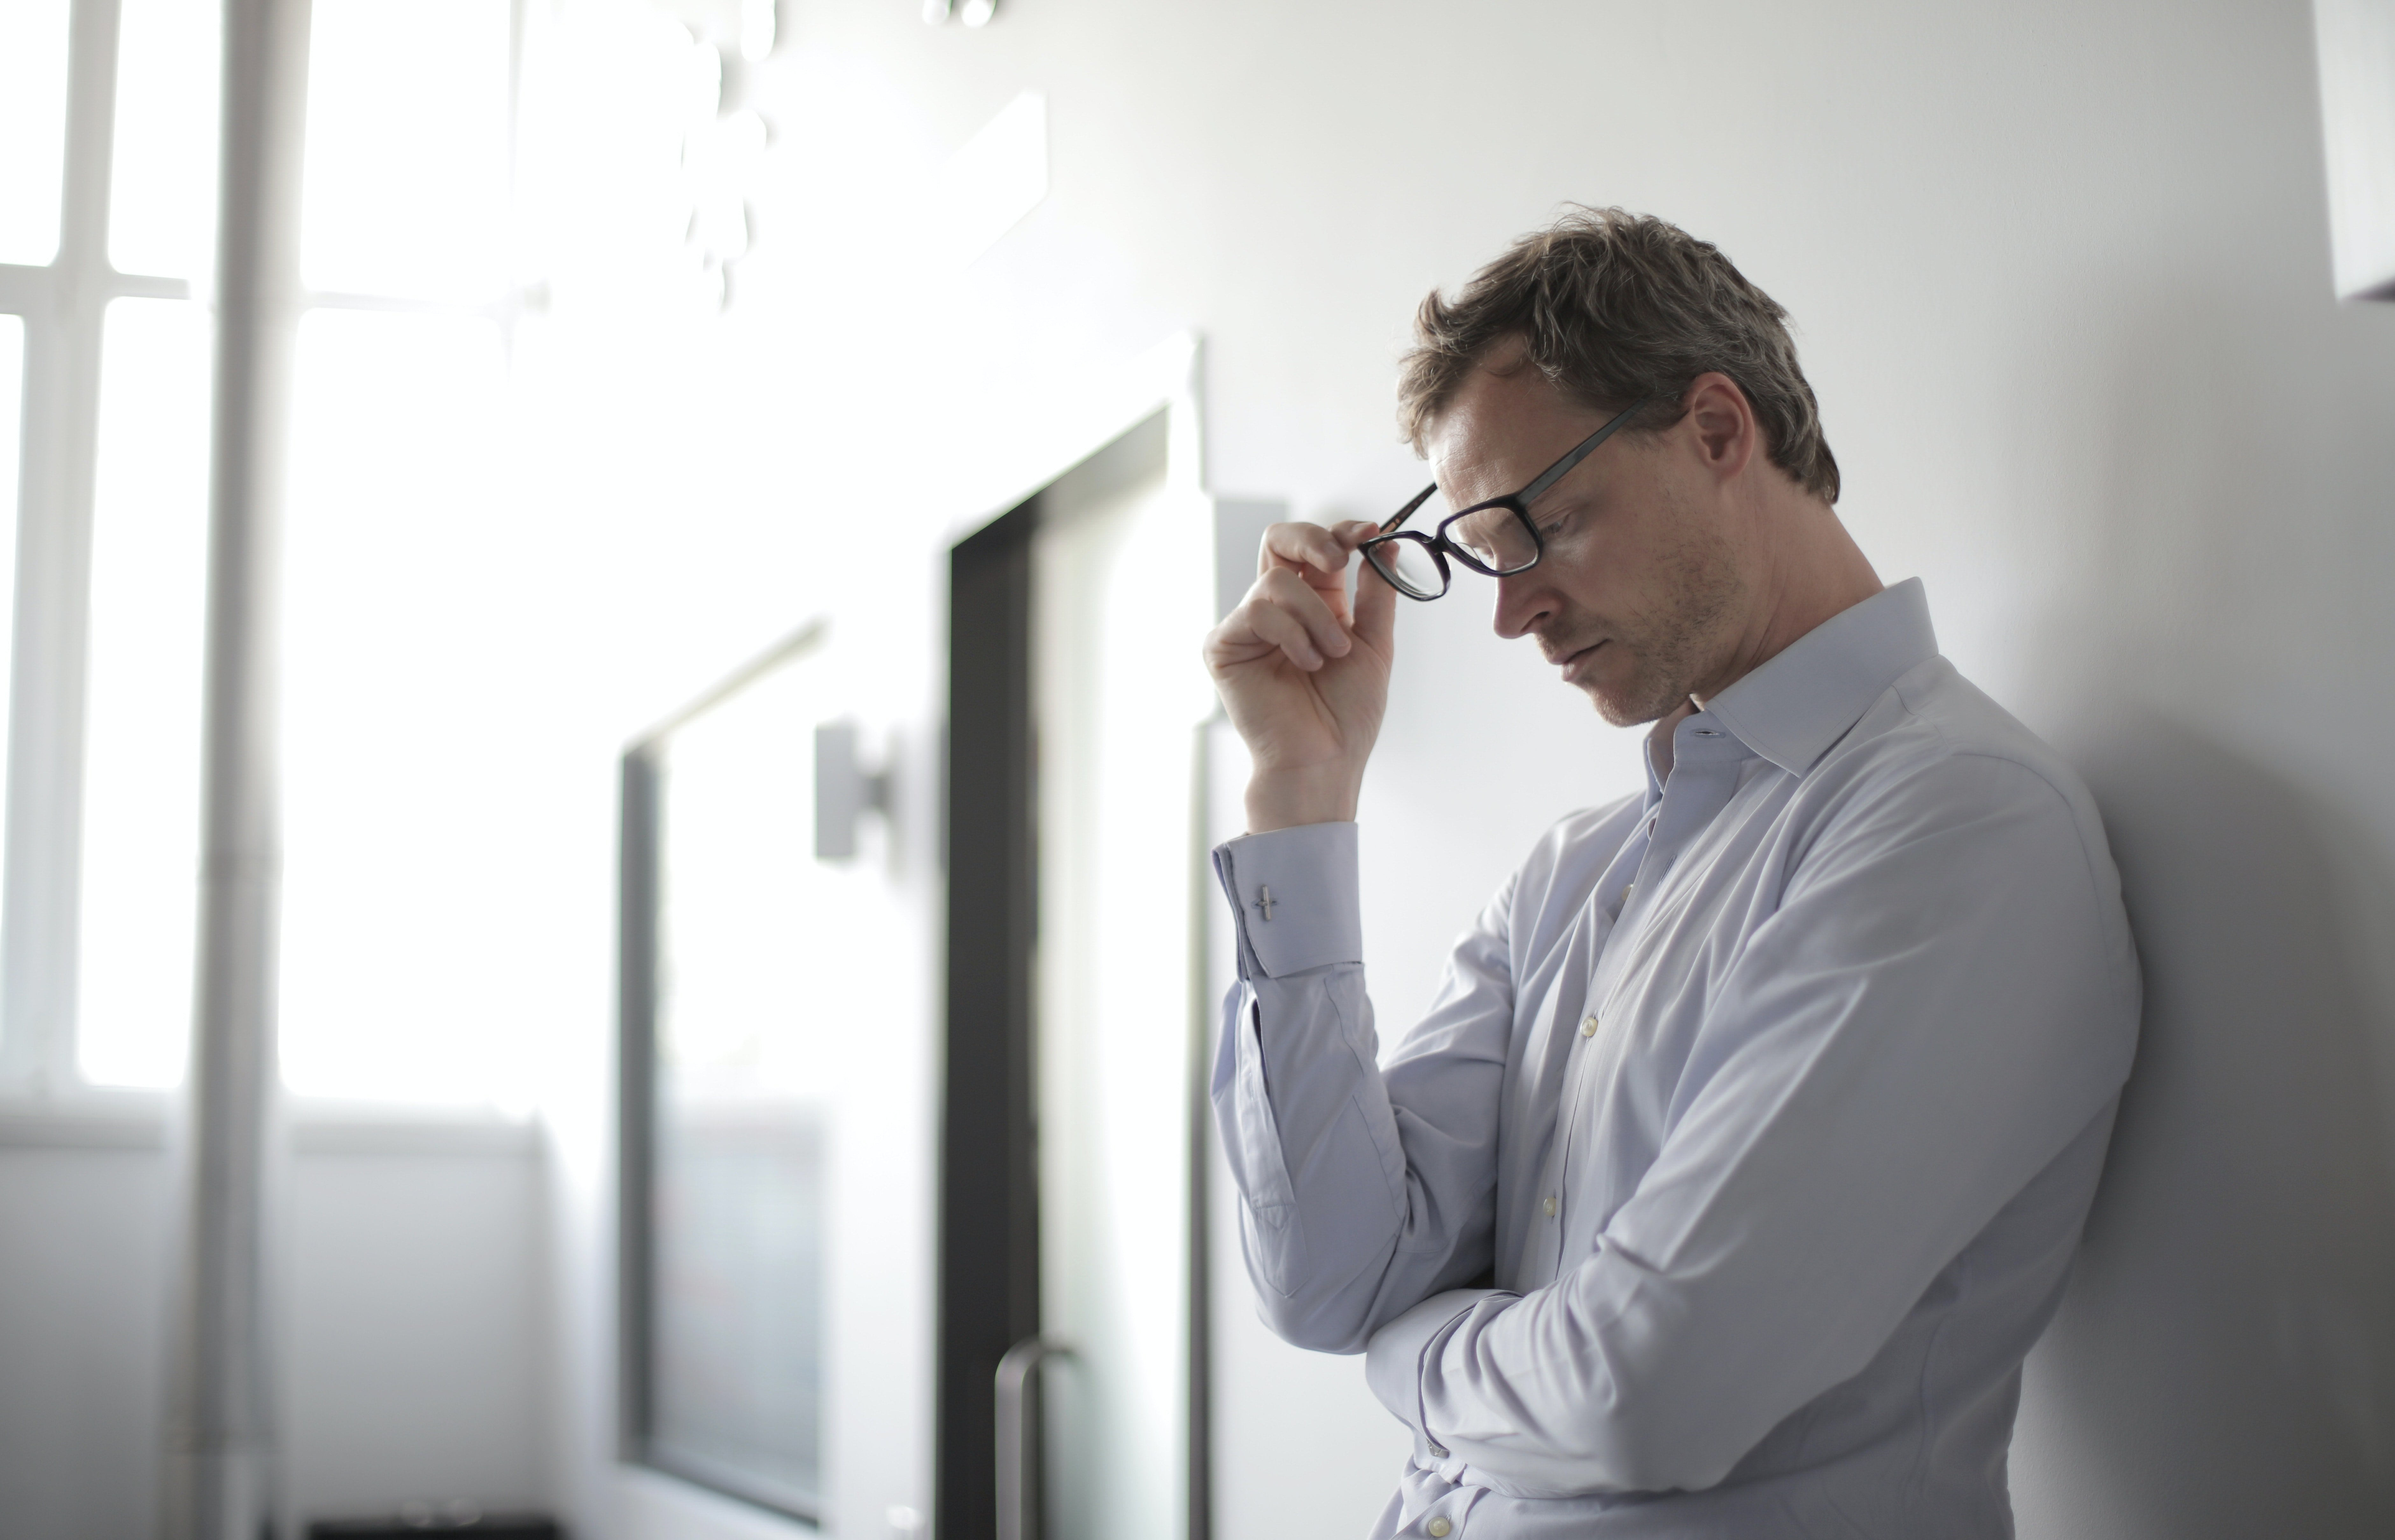 A man holding on to his glasses while looking down and leaning against a wall.   Photo: Pexels